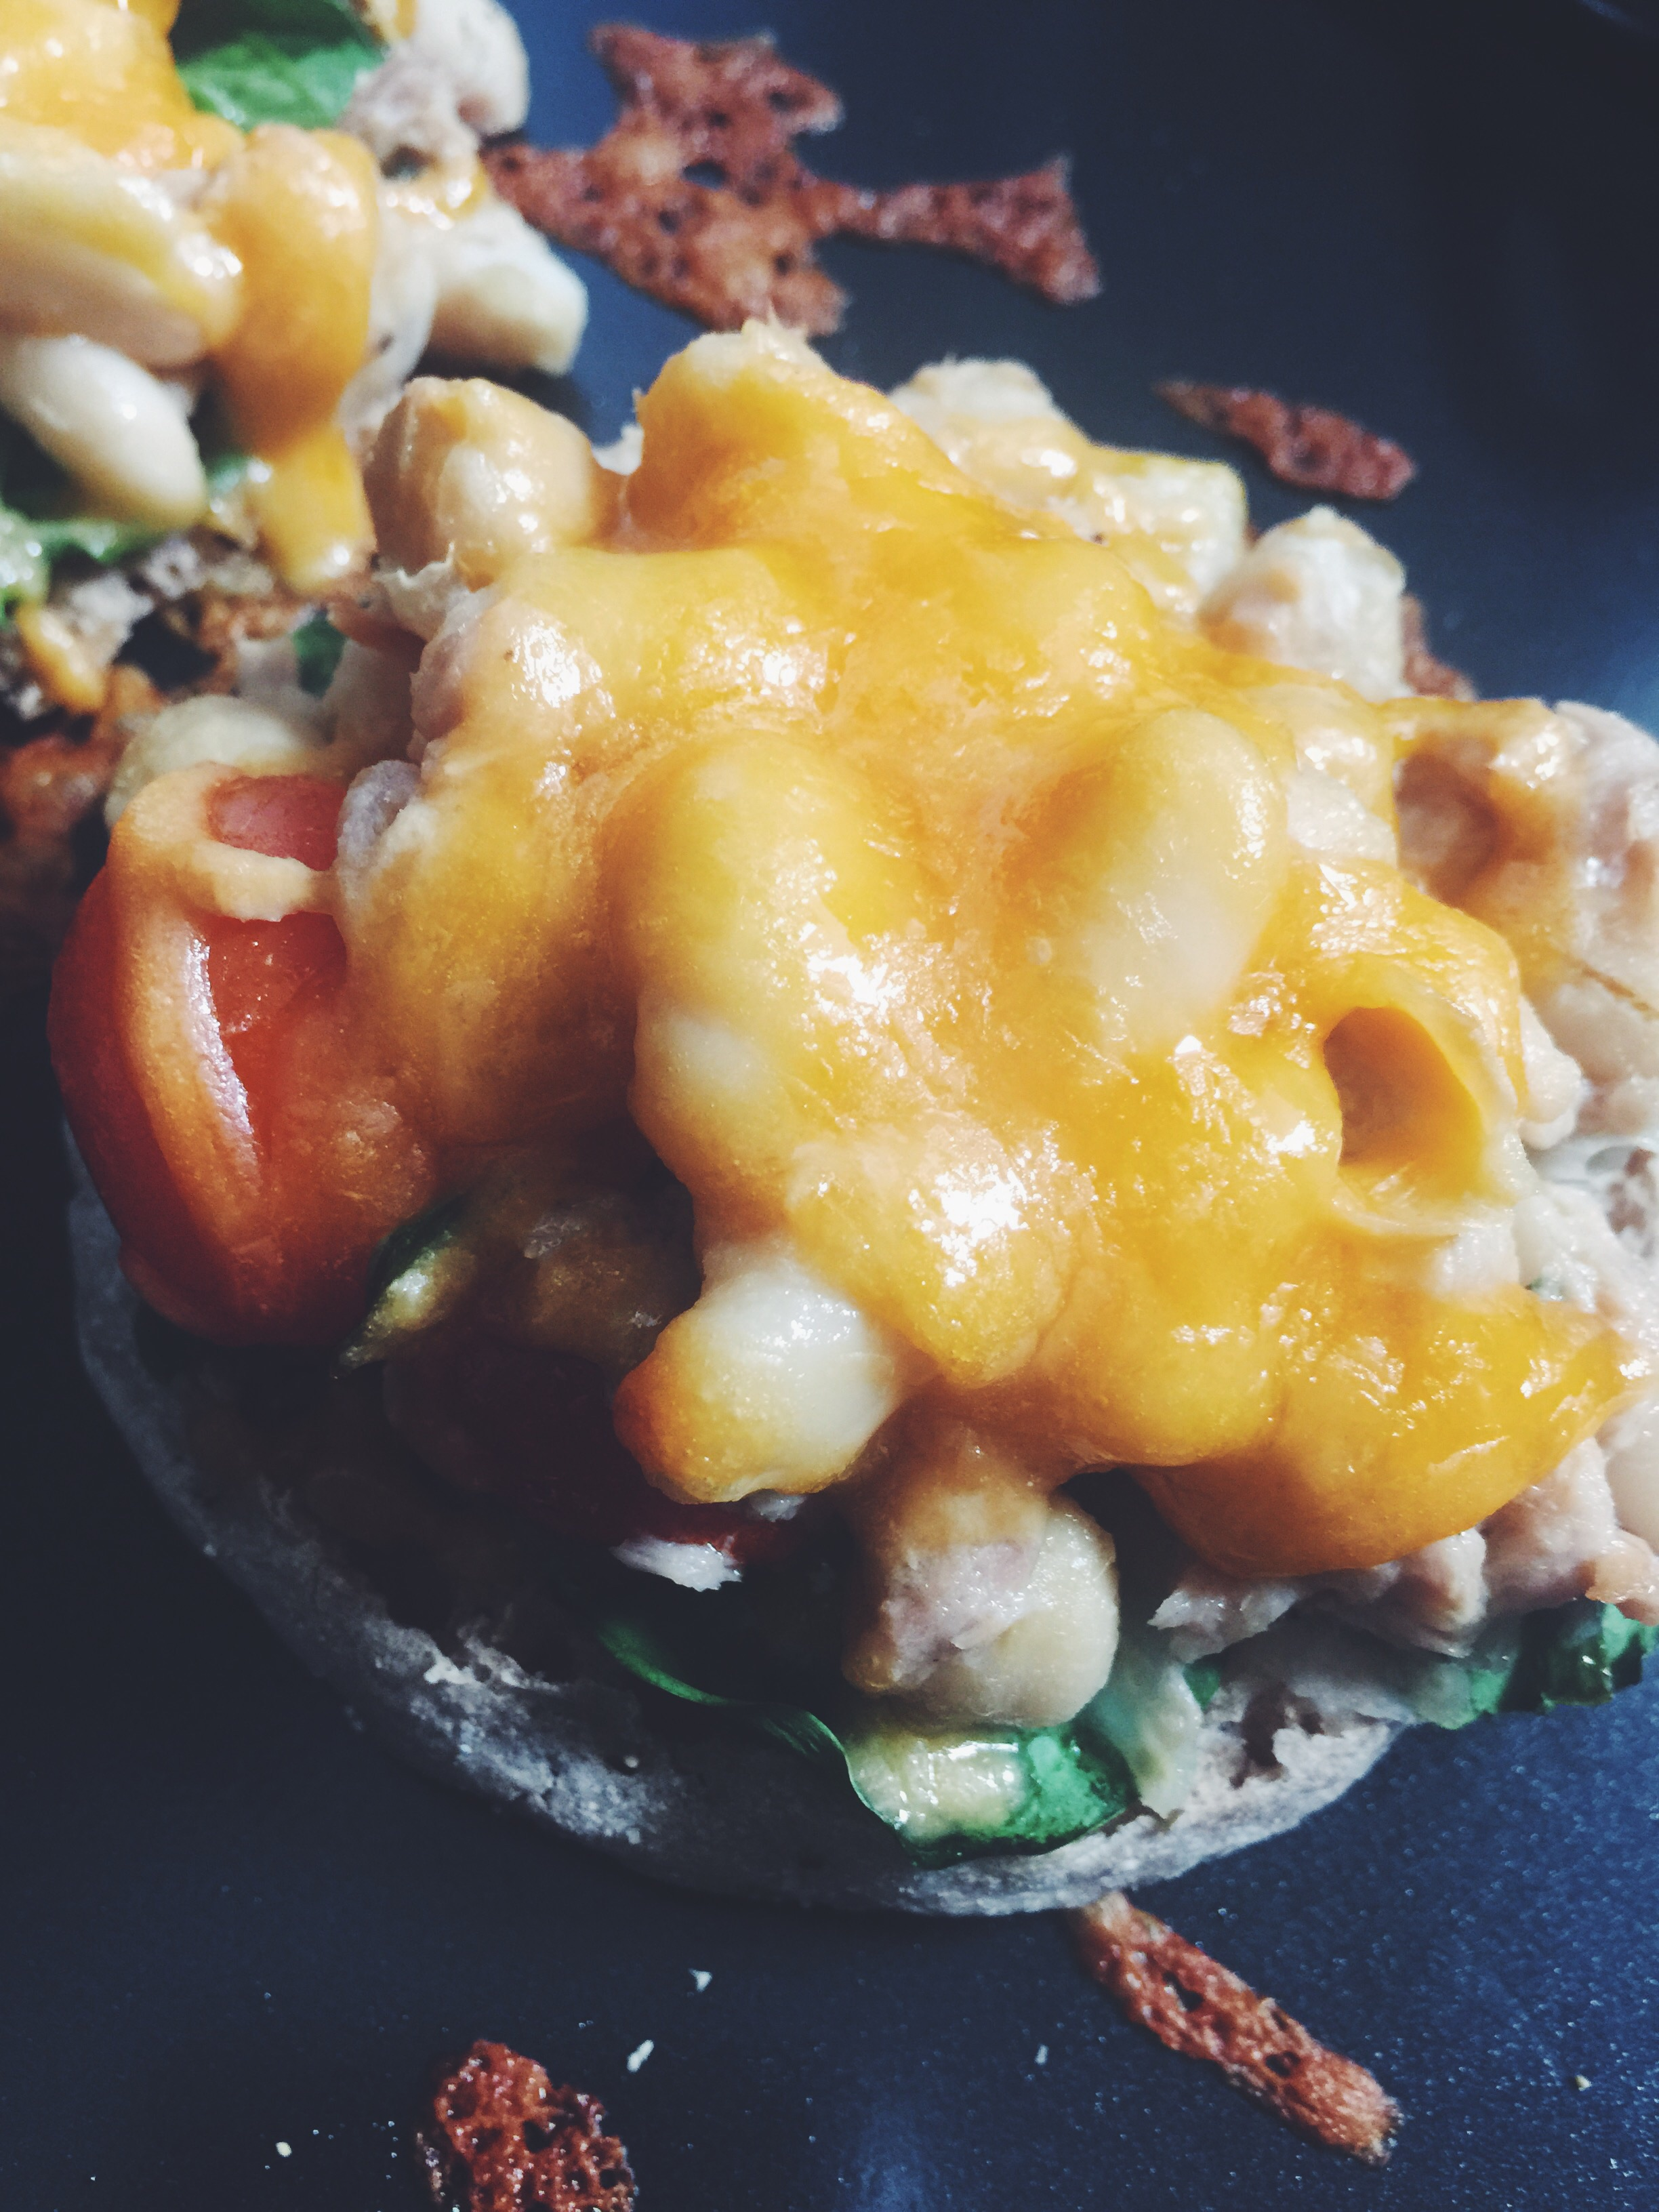 tuna-bean salad melt on english muffin